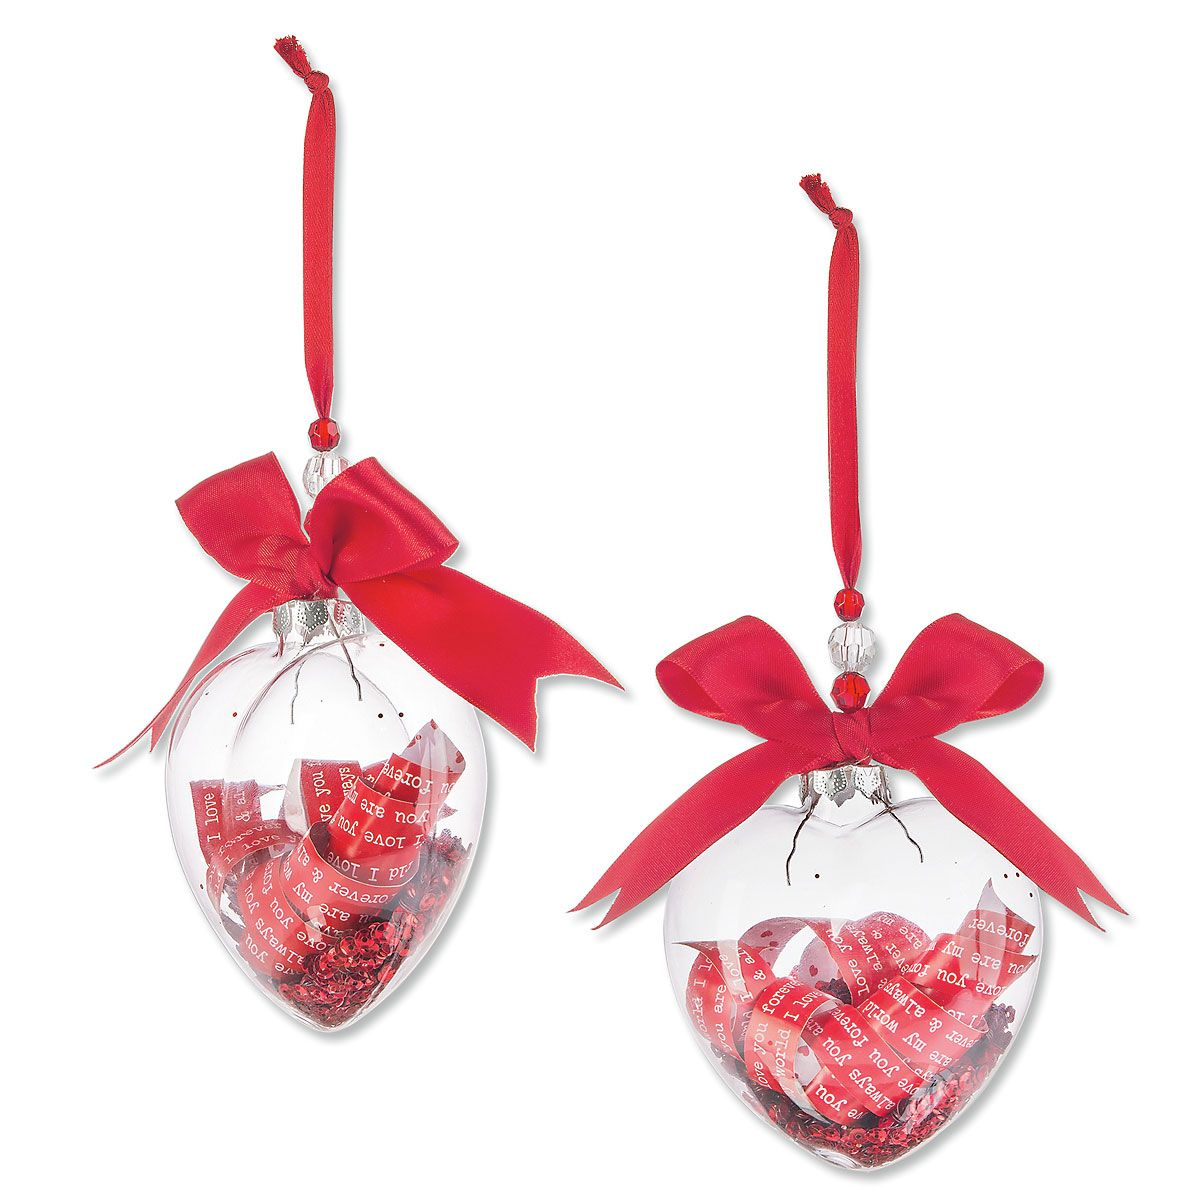 Glass Love Notes Ornament